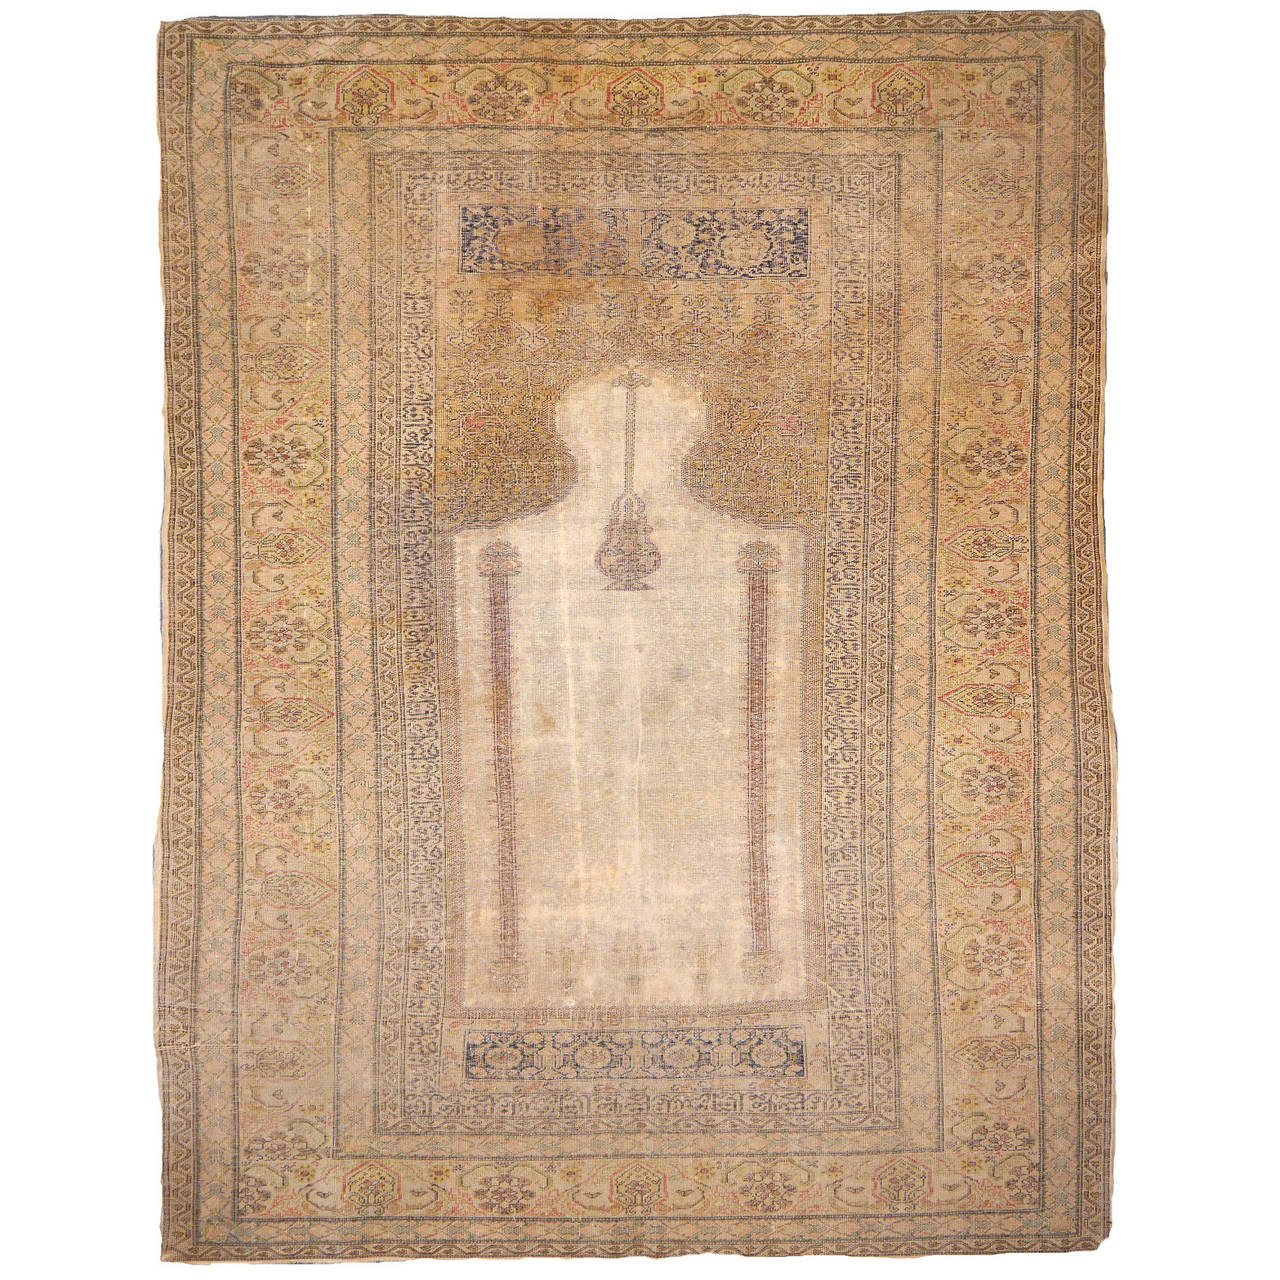 Antique Turkish Distressed Bandirma Silk Prayer Rug For